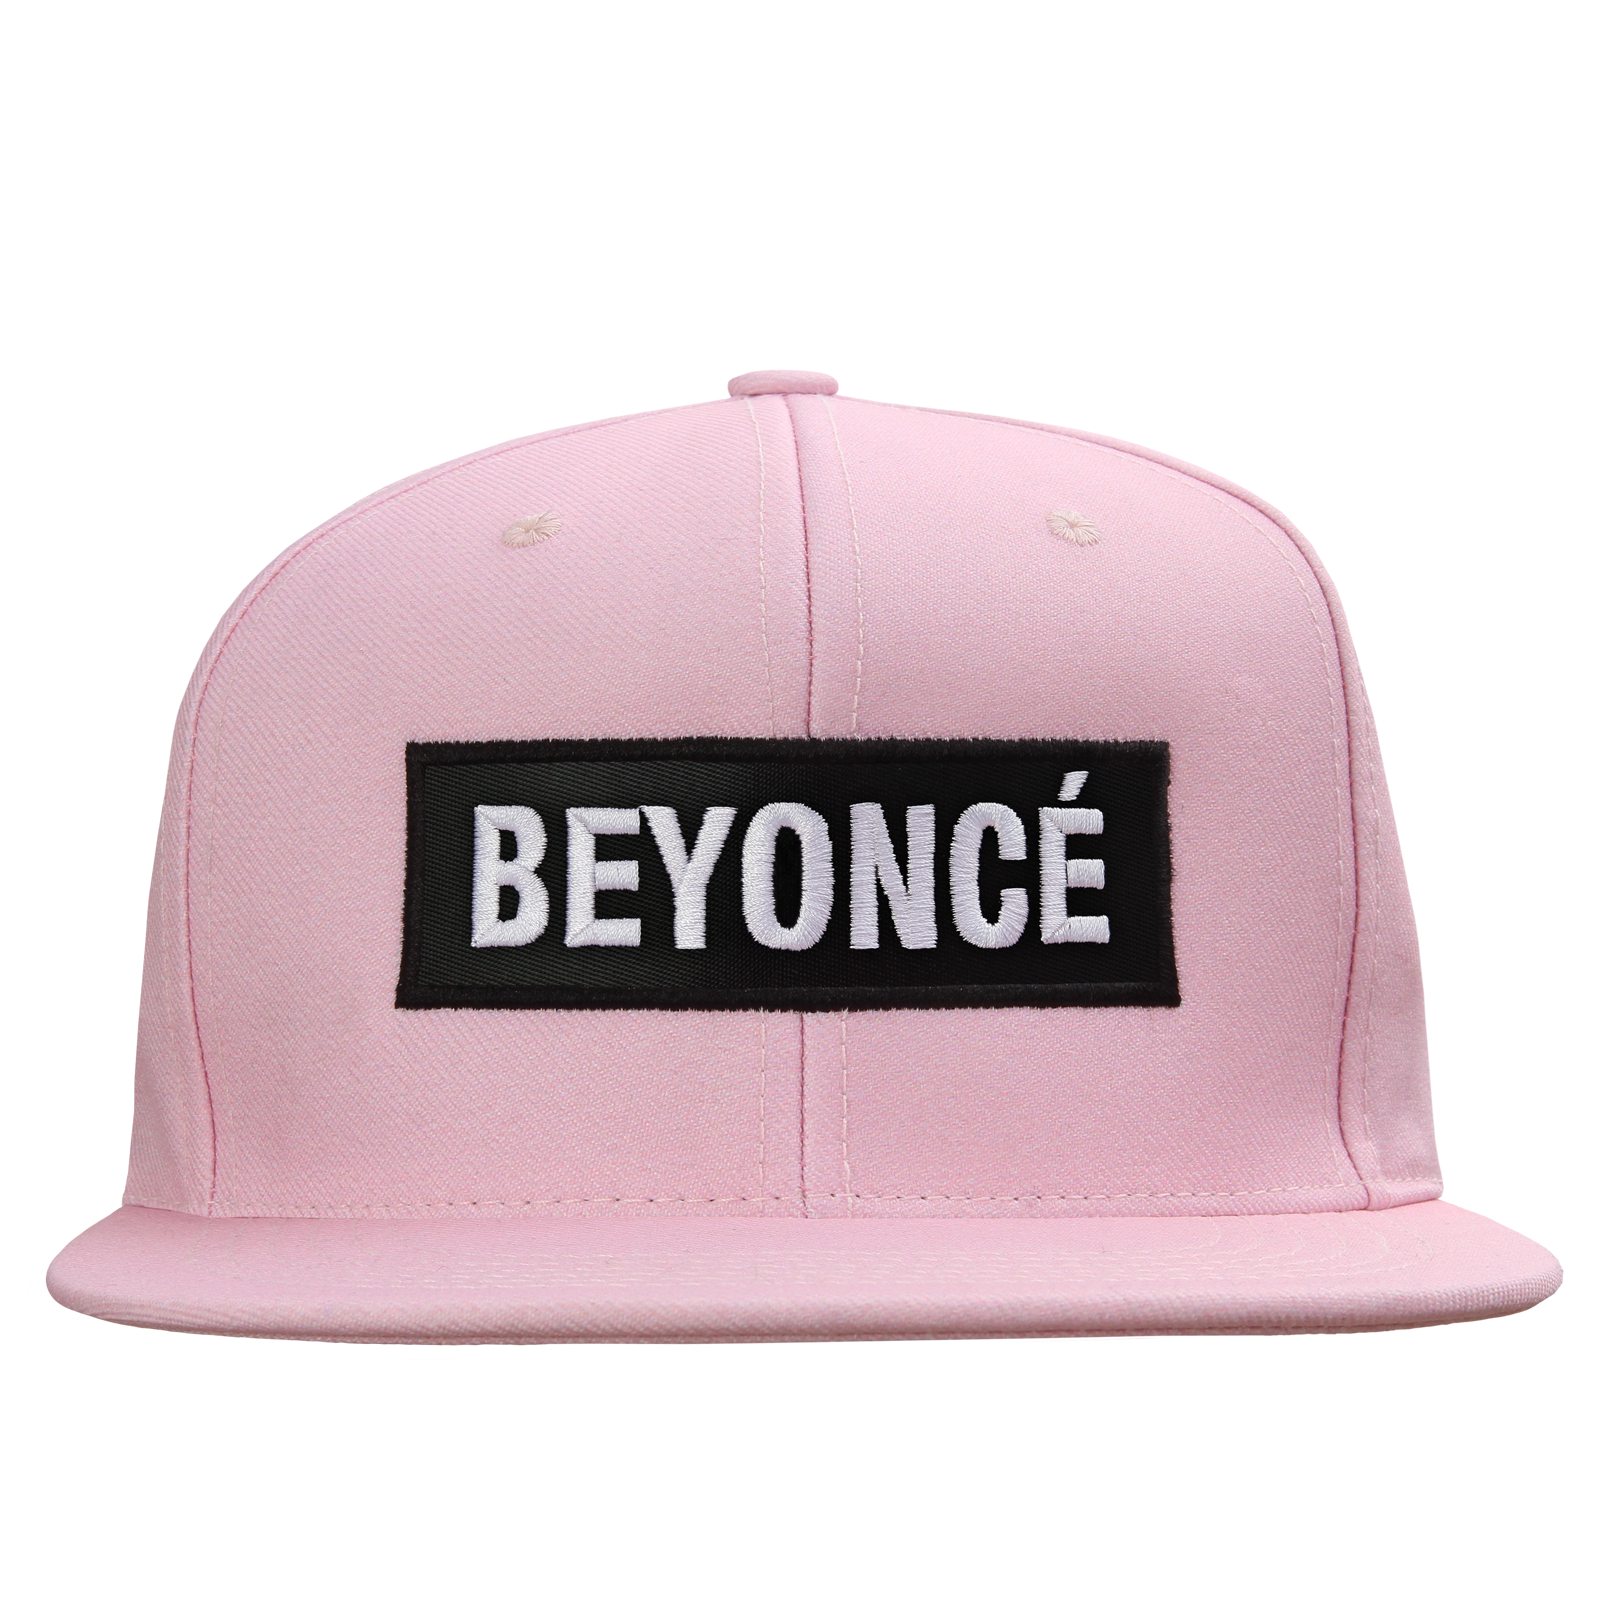 """cd3d132cc88 Pink snapback hat with """"BEYONCÉ"""" label on front.This item is a pre-order  and we expect items to start shipping in the next two weeks."""